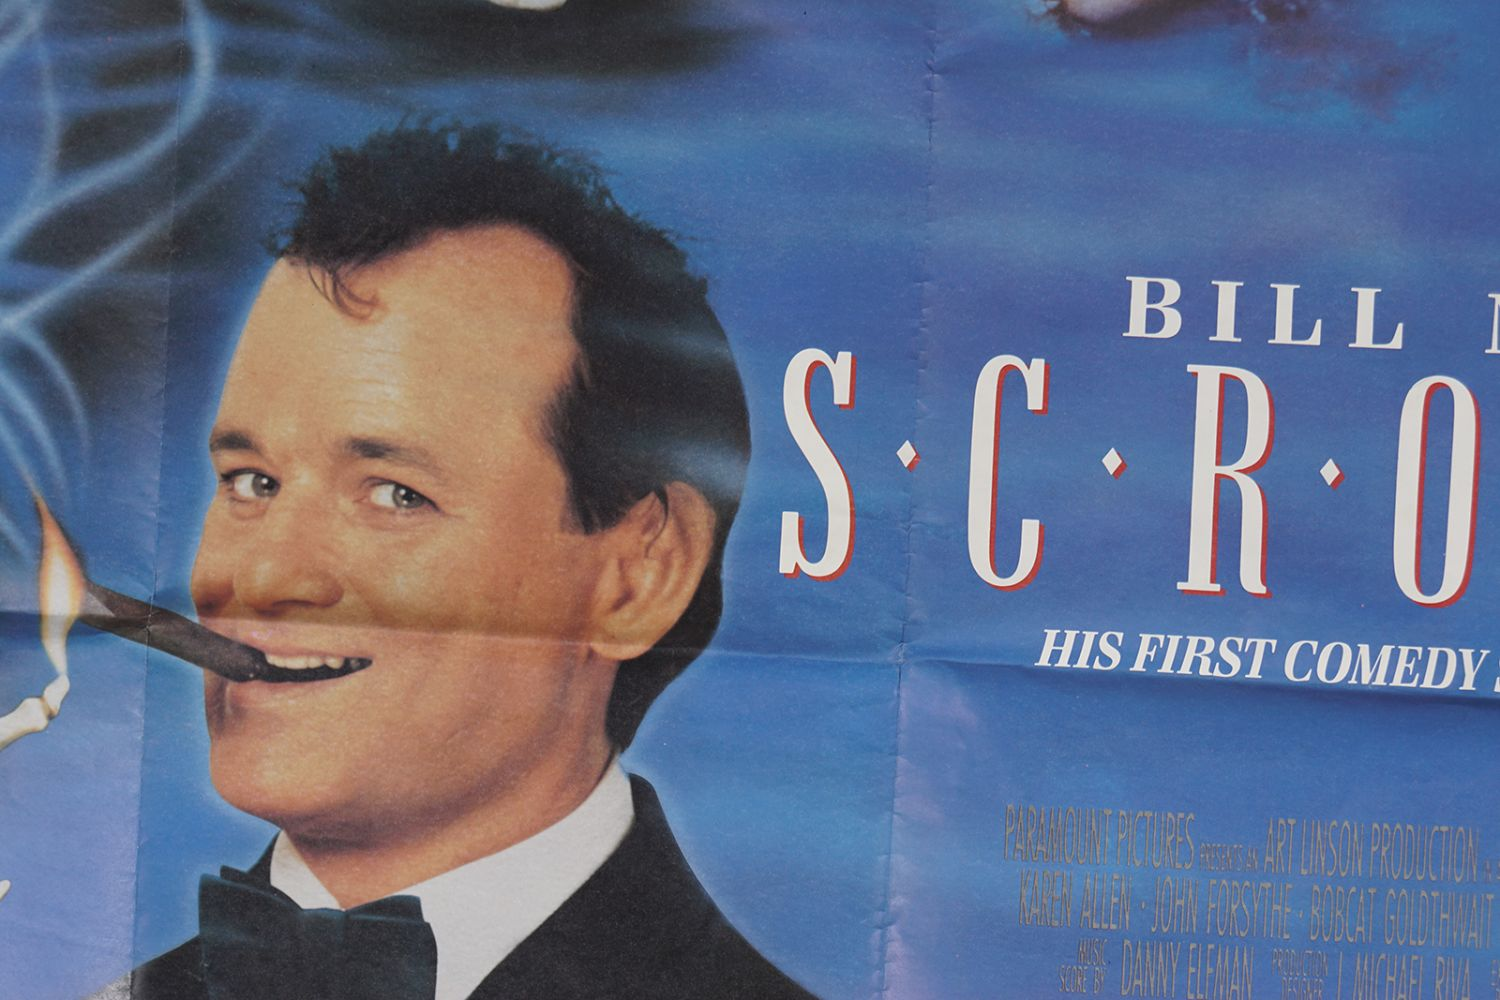 SCROOGED - Image 3 of 3